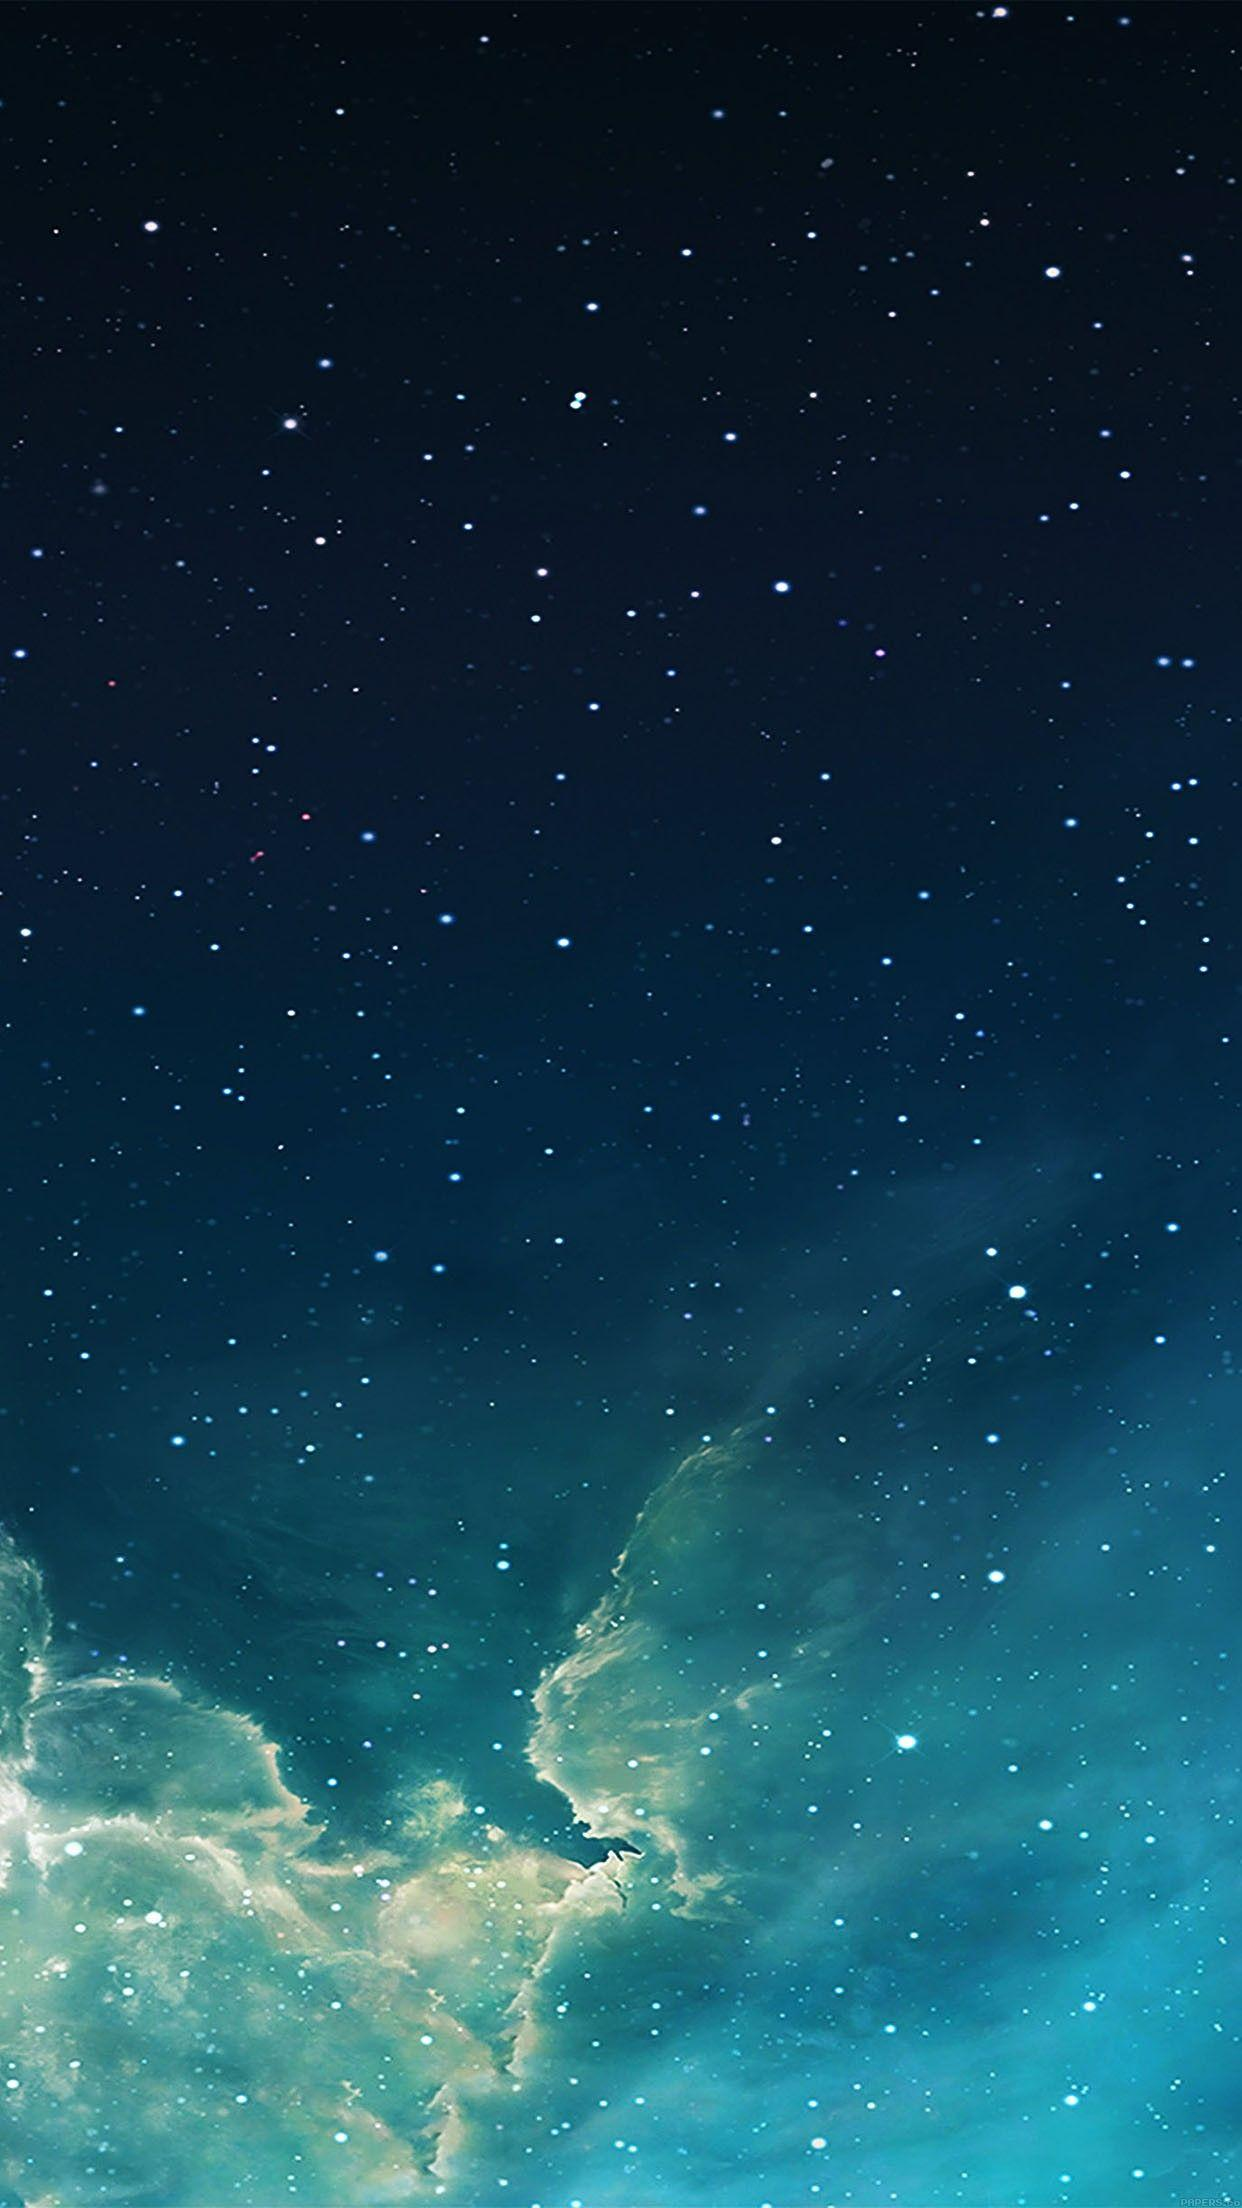 wallpaper galaxy blue 7 starry star sky iphone 6 plus wallpapers ...